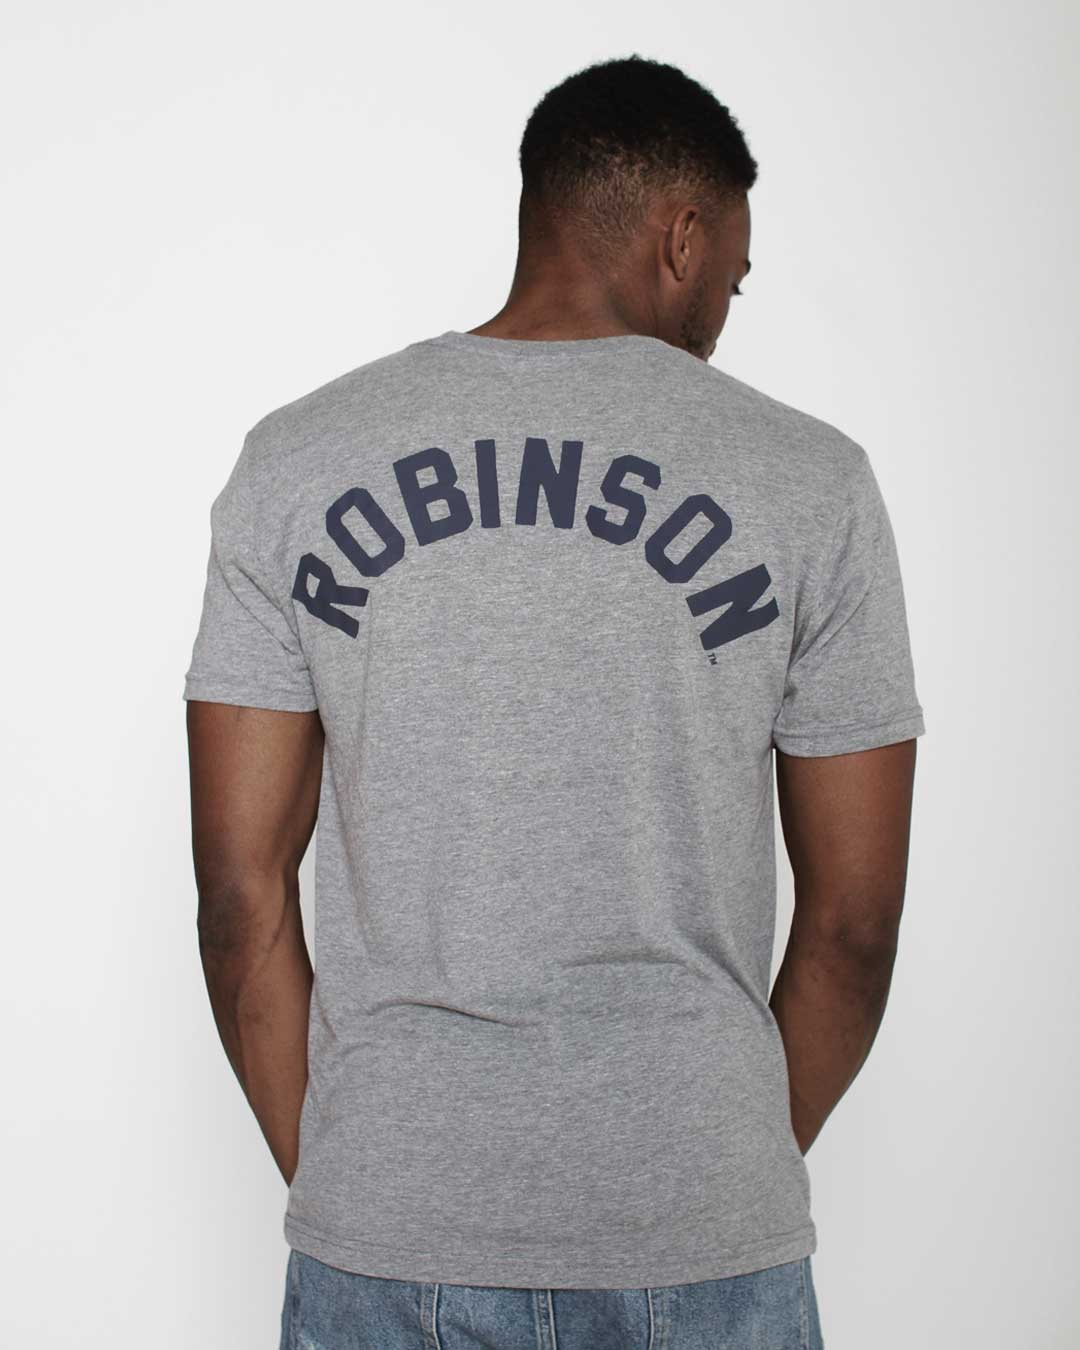 Jackie Robinson Ground Breakers Tee - Roots of Inc dba Roots of Fight